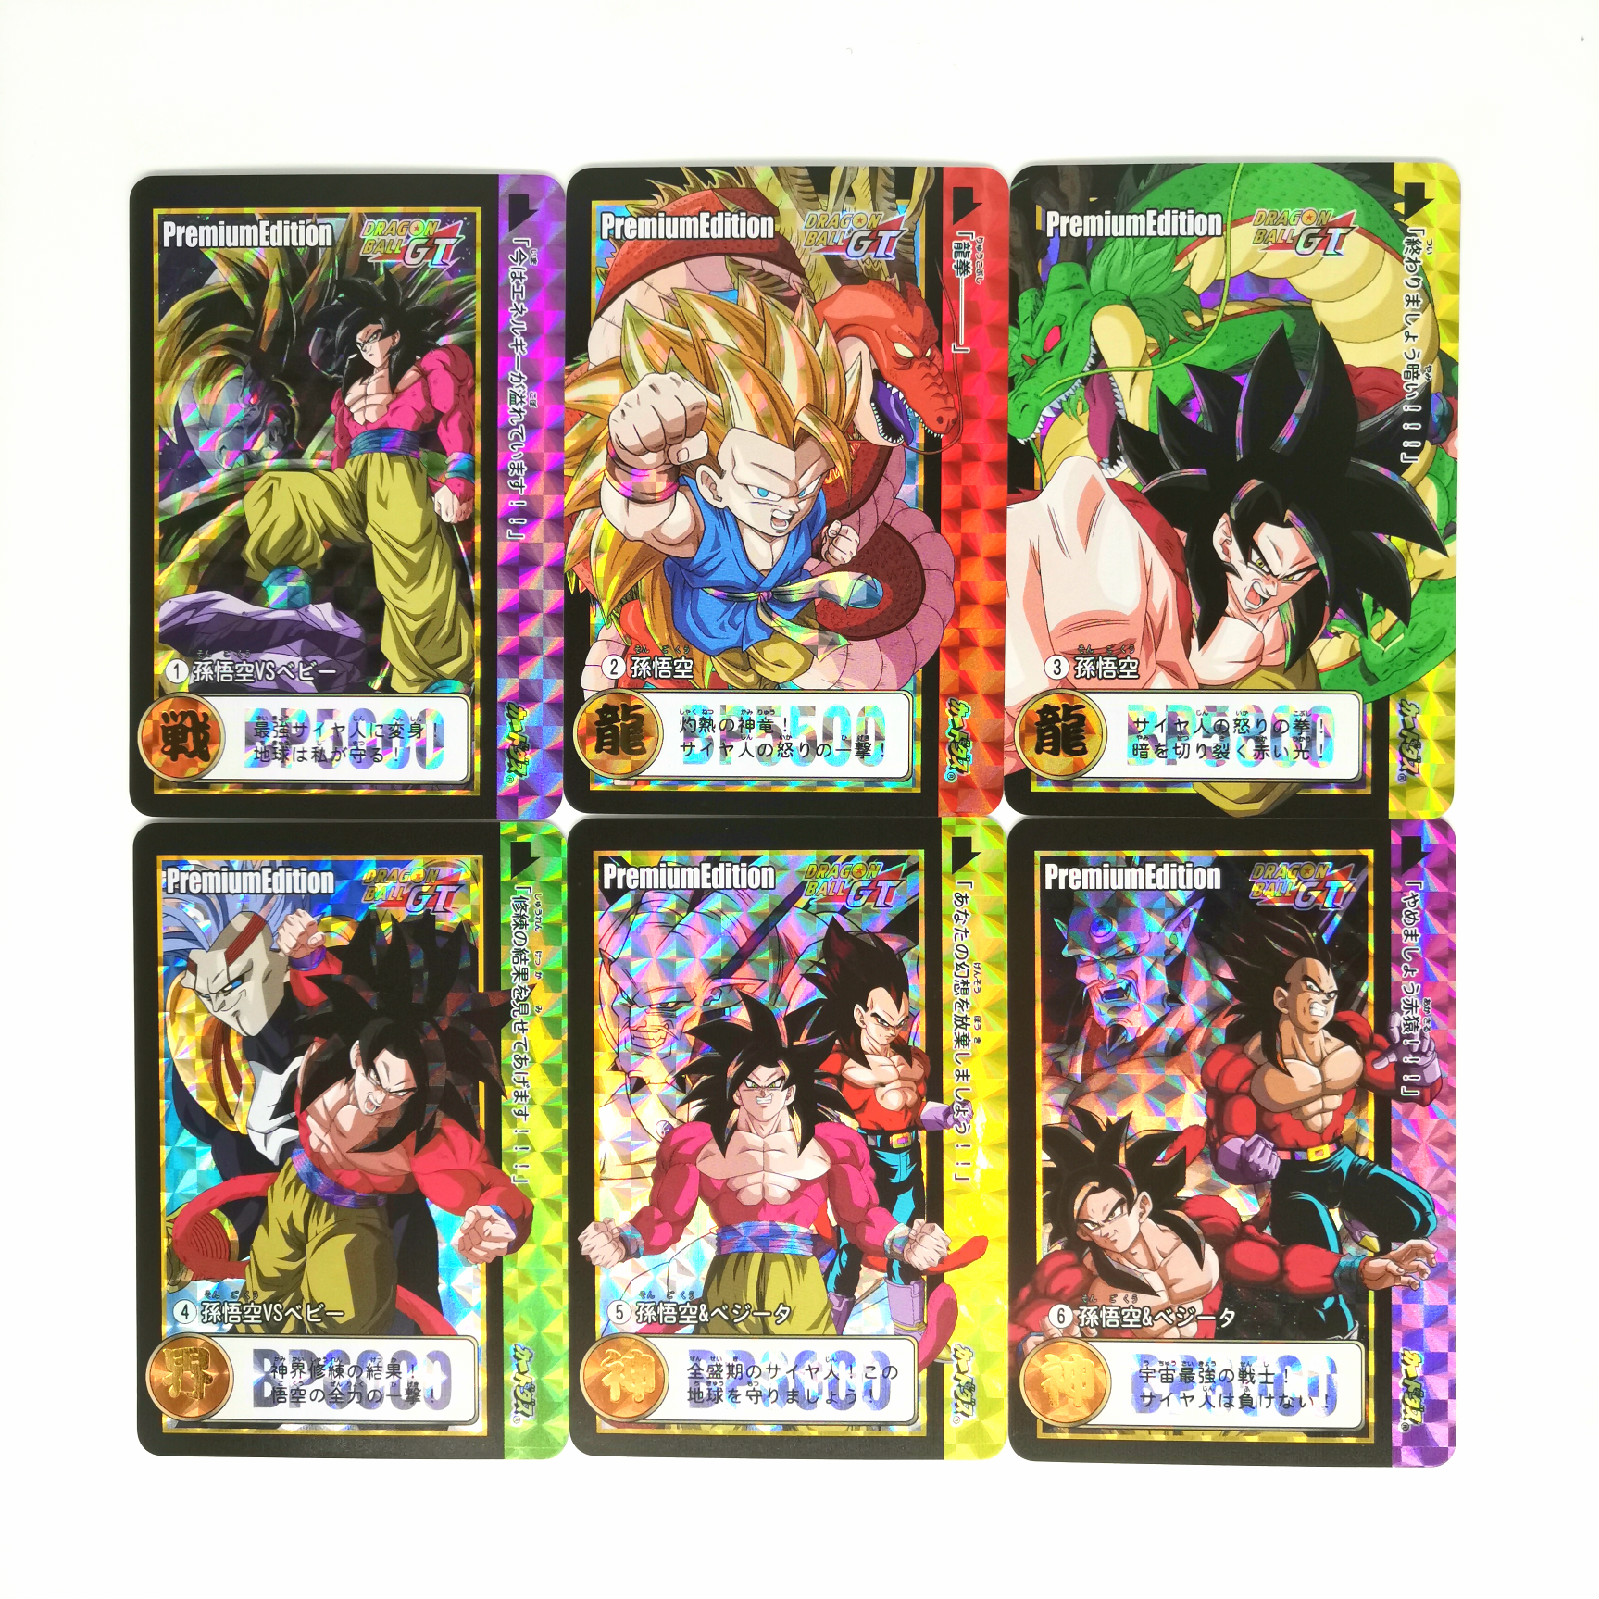 9pcs/set Super Dragon Ball GT Super Saiyan 4 Bronzing Heroes Battle Card Ultra Instinct Goku Vegeta Game Collection Cards